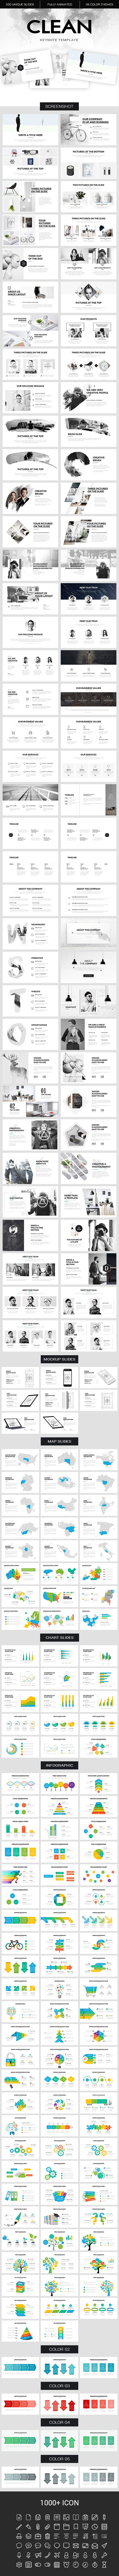 Clean Keynote Template  #ecommerce #enterprise #entrepreneur • Click here to download ! http://graphicriver.net/item/clean-keynote-template/15921009?s_rank=116&ref=pxcr